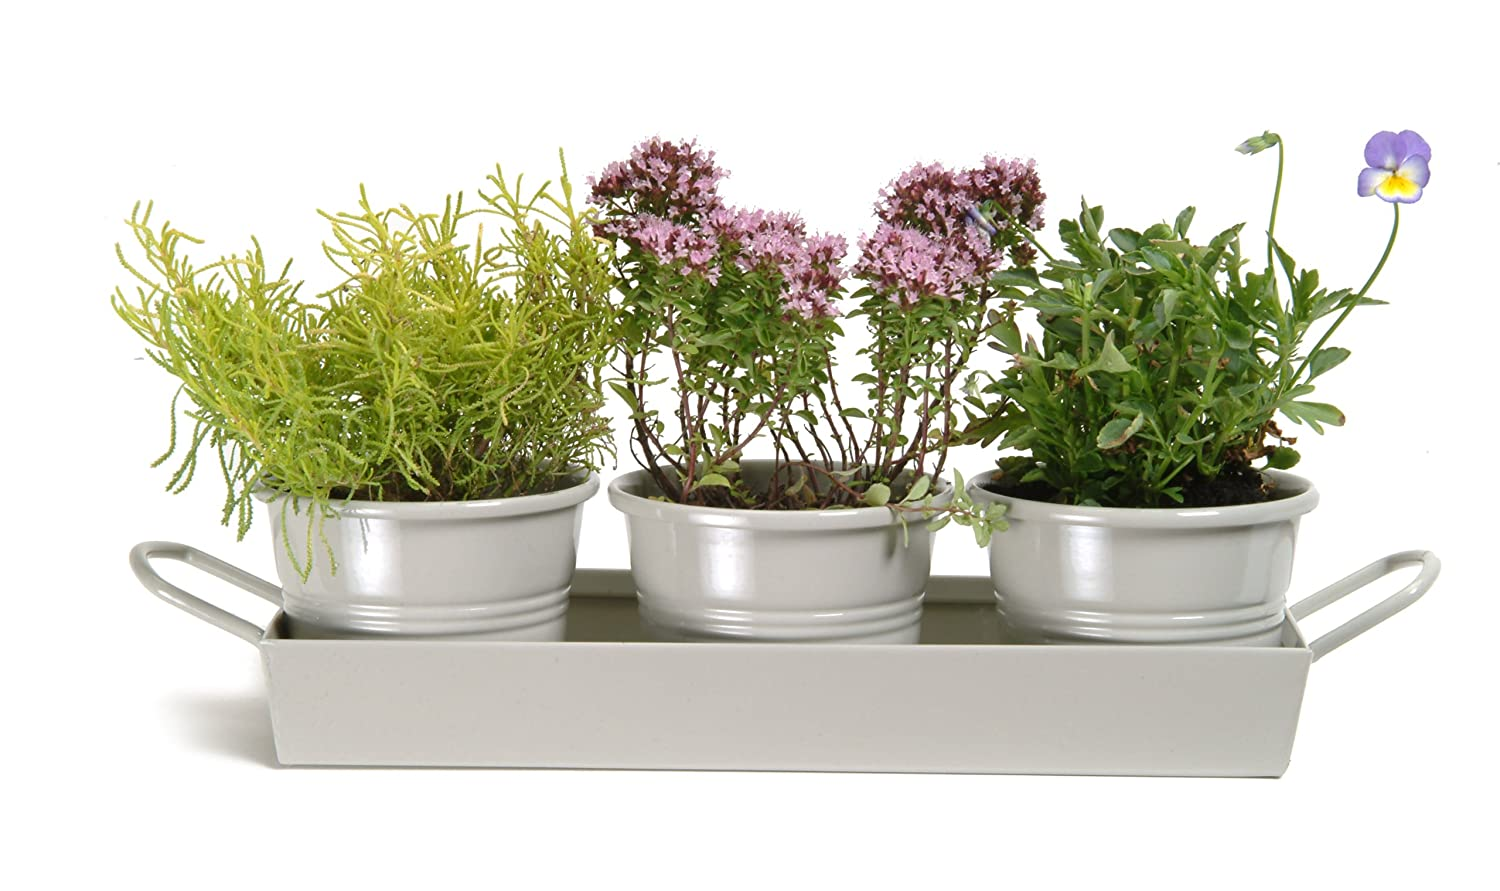 Garden Trading Pots on a Tray in Clay (Set of 3) Garden Trading Ltd